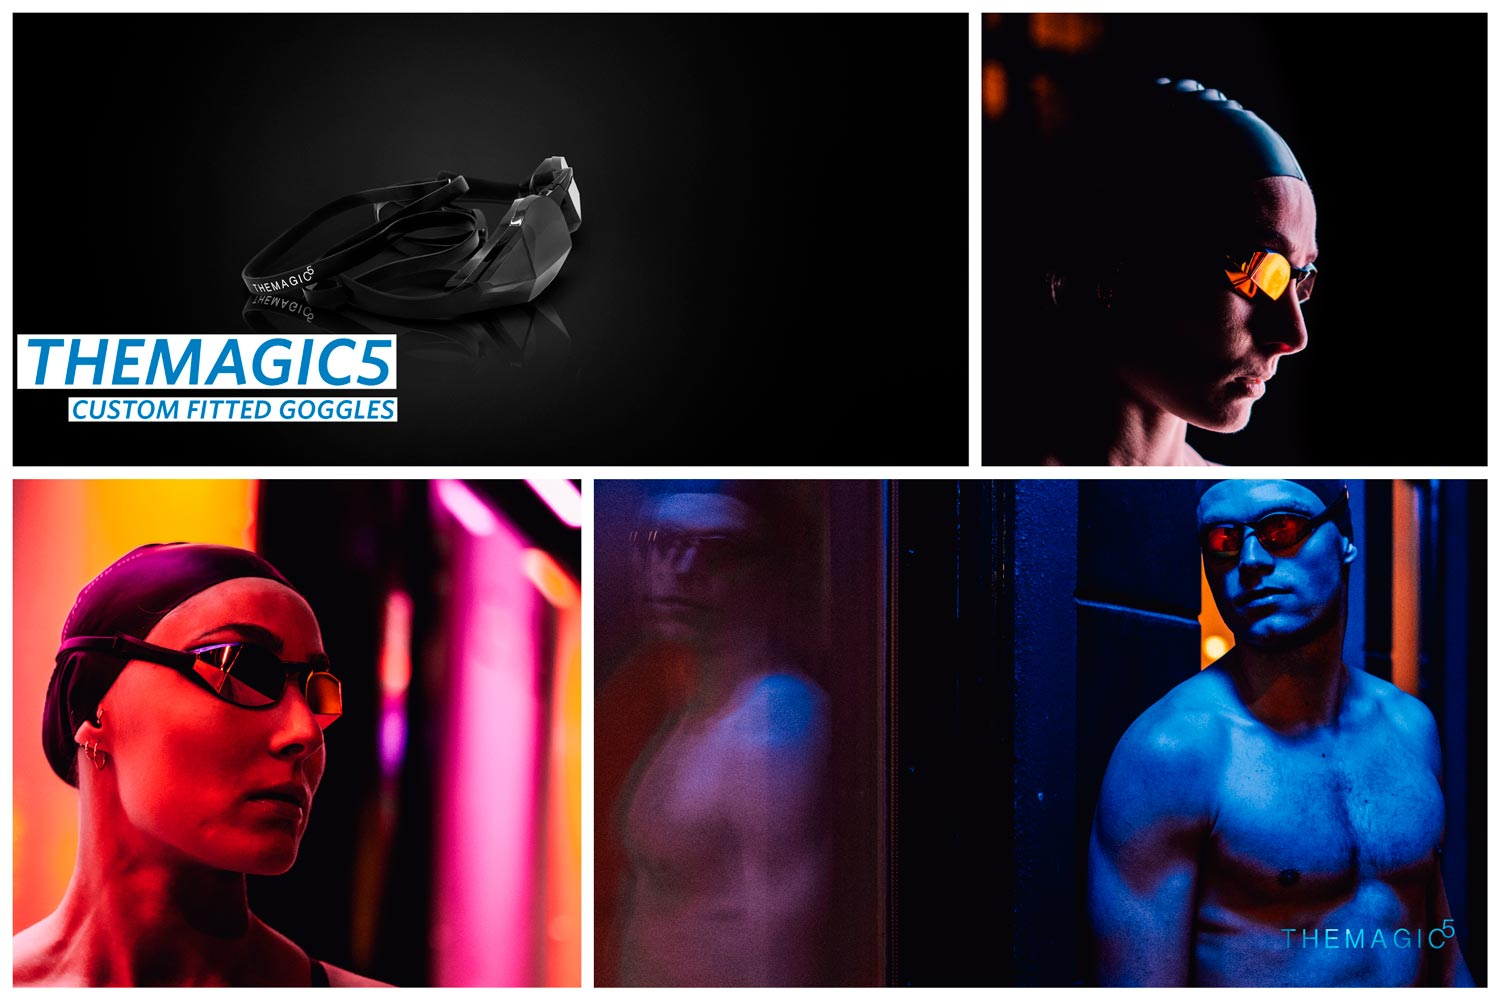 TheMagic5 - Custom Fitted Goggles